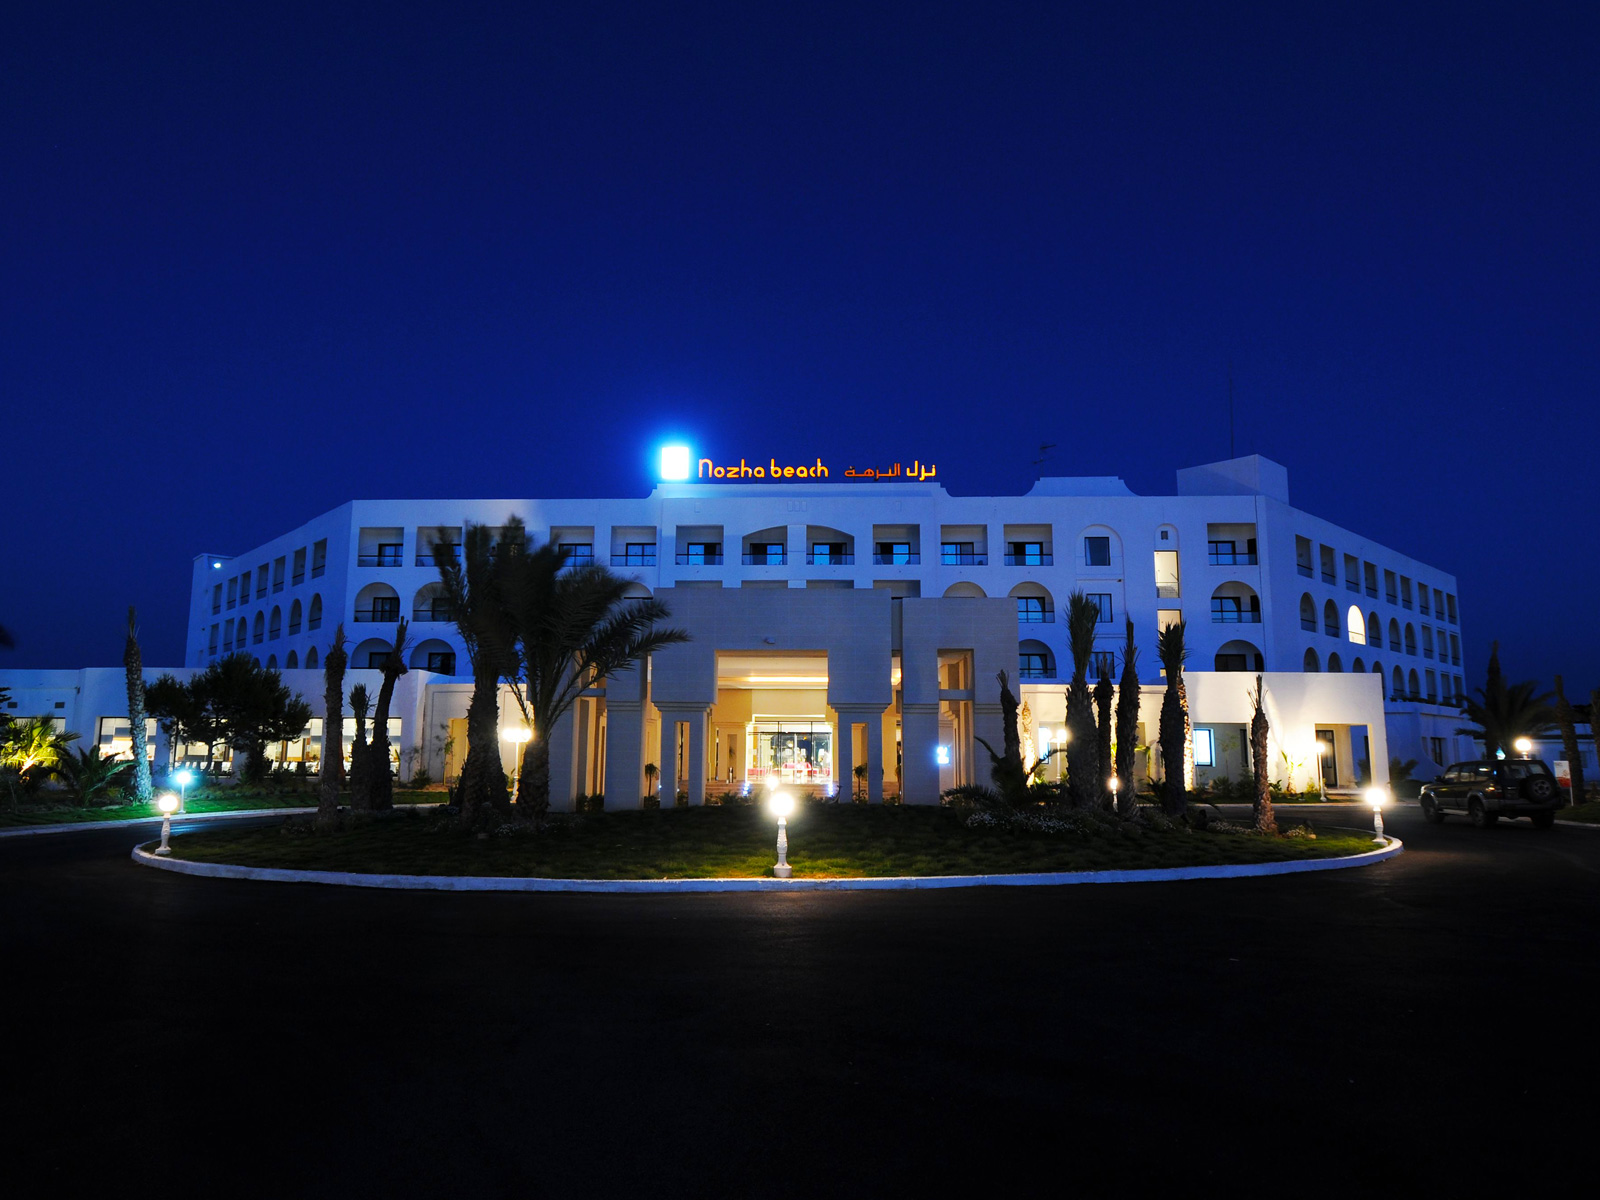 Main Entrance - Hamammet Nozha Beach Hotel